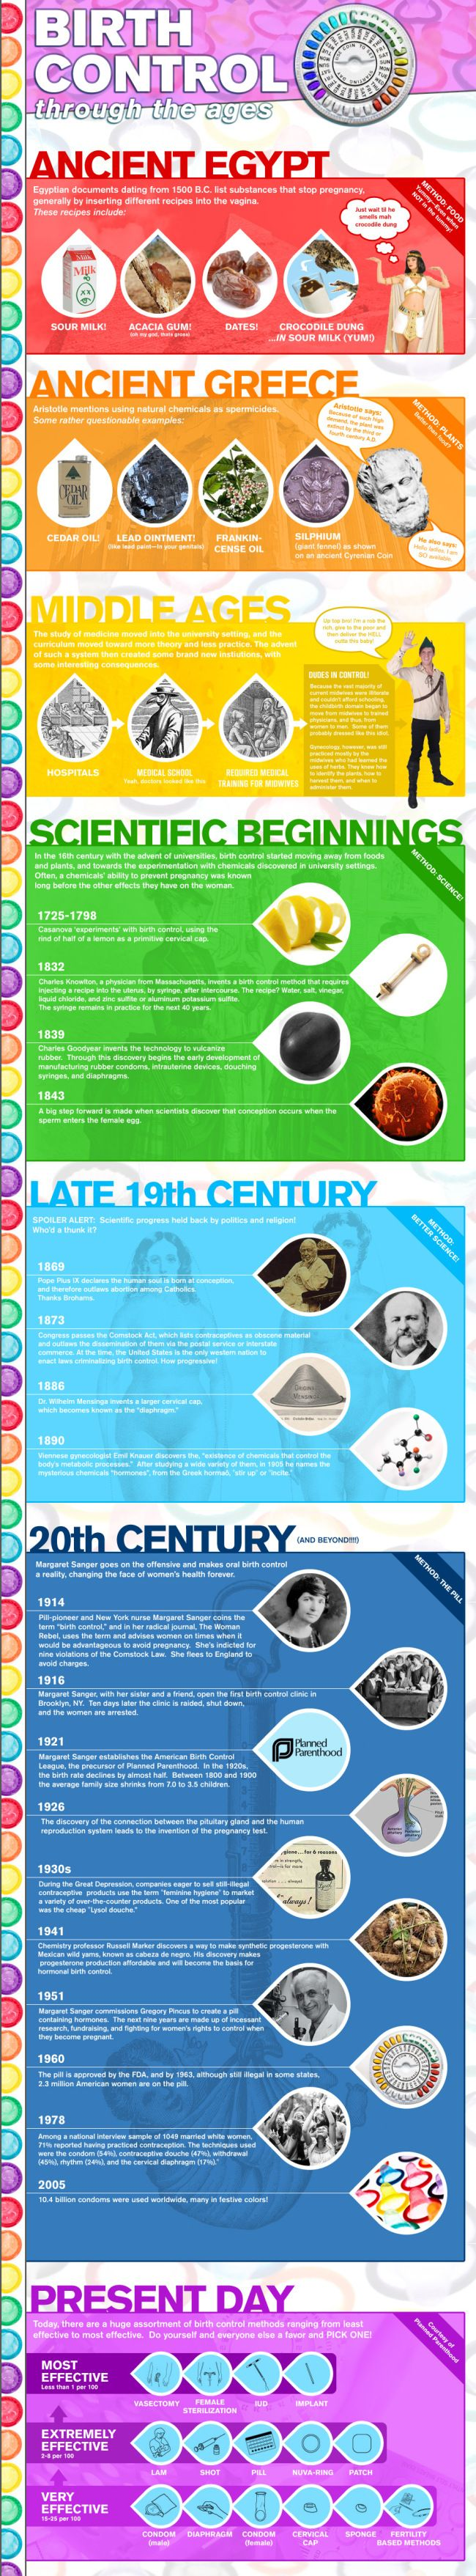 History of Contraception Inforgraphic